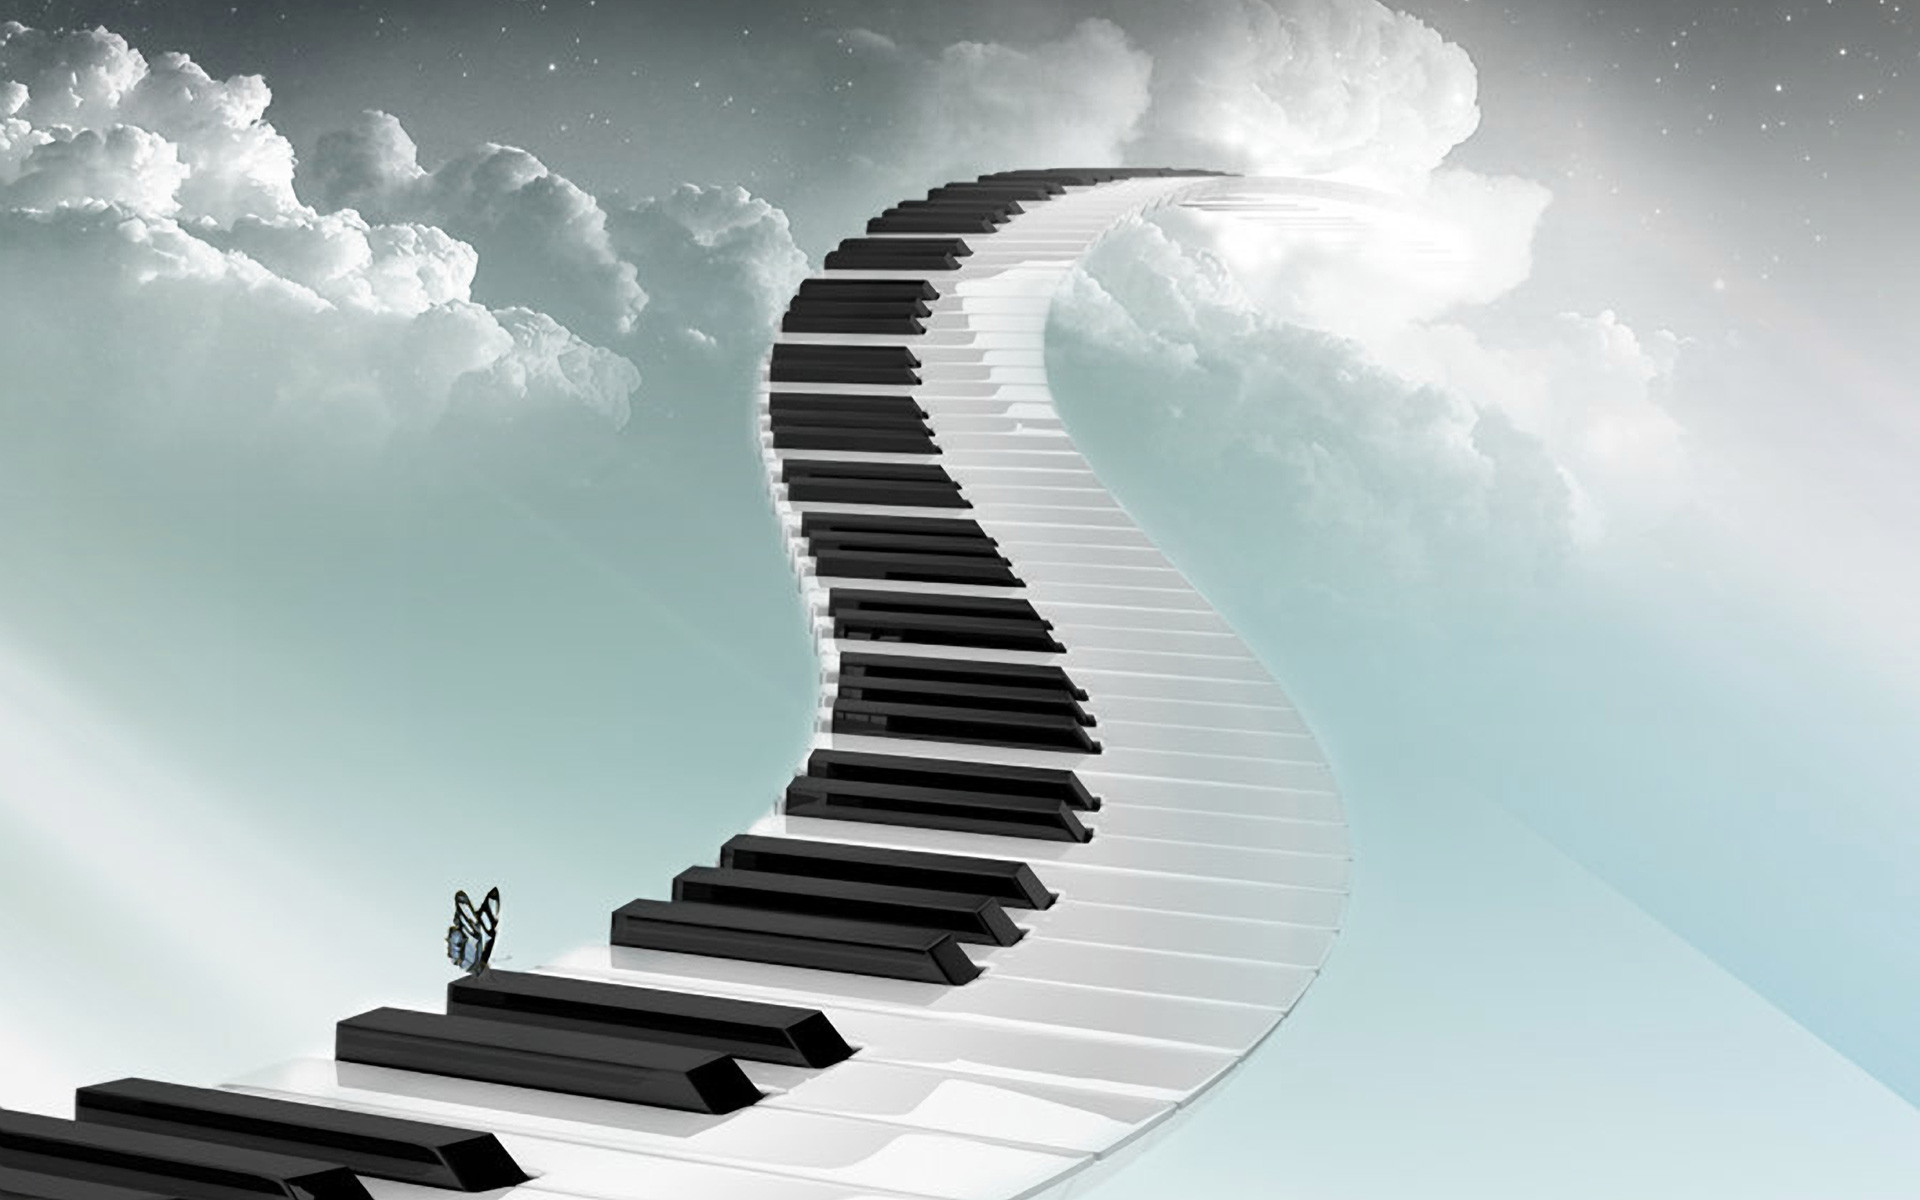 1920x1200 Piano images Piano Path HD wallpaper and background photos